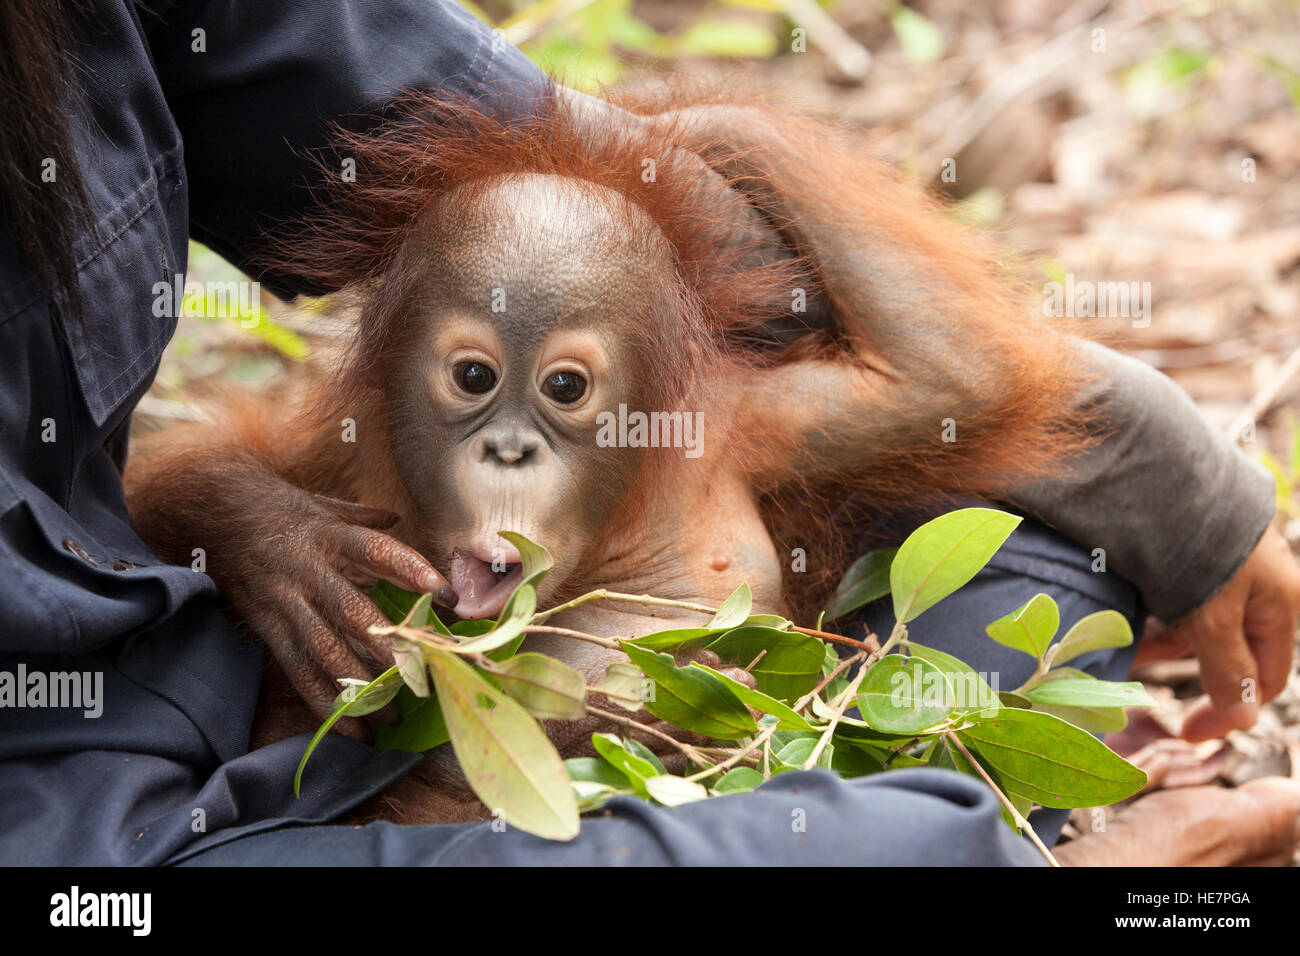 Curious baby orphan orangutan (Pongo pygmaeus) in caretaker's lap playing with leaves during forest training - Stock Image